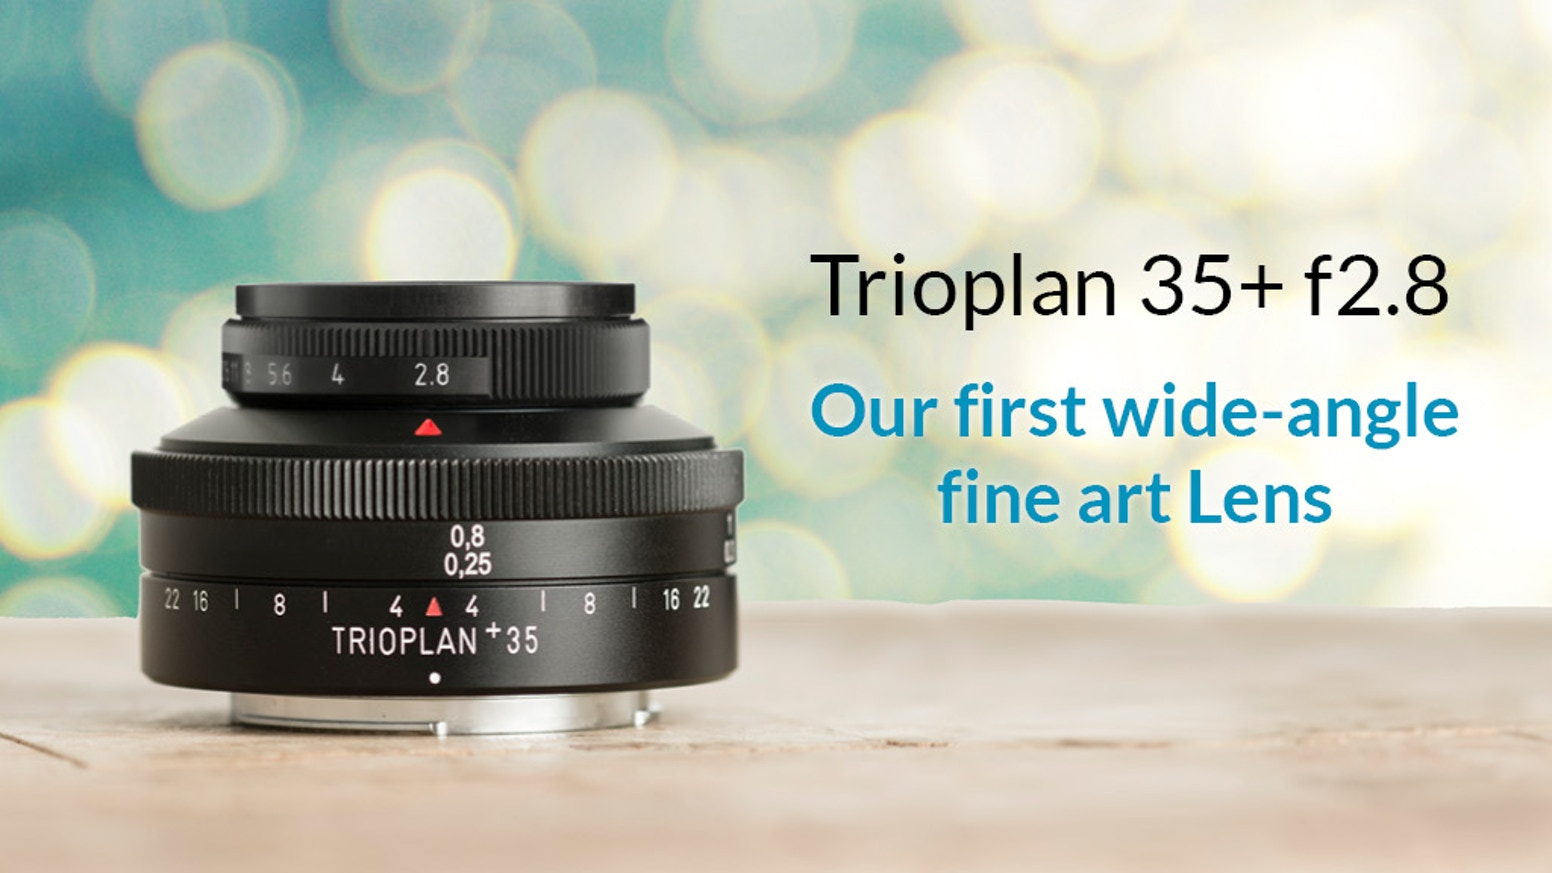 Fire up your creativity with the endless possibilities of the world's first Soap Bubble wide-angle fine art lens: Trioplan 35 f2.8